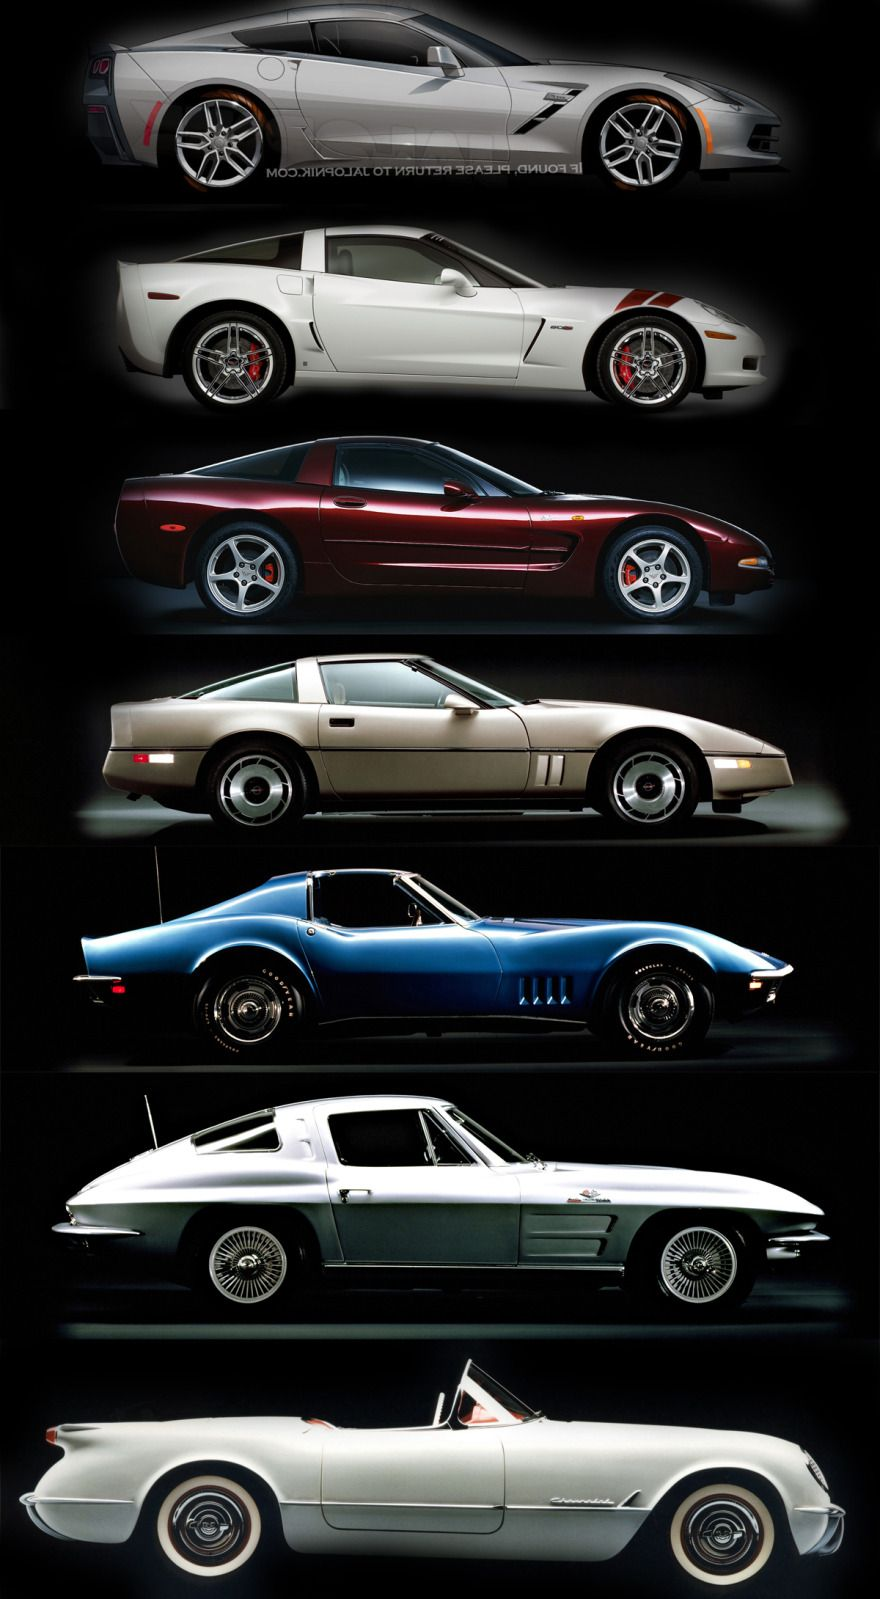 Toyota Dealer Houston >> Corvettes over the years | Cars motorcycles:__cat__ ...